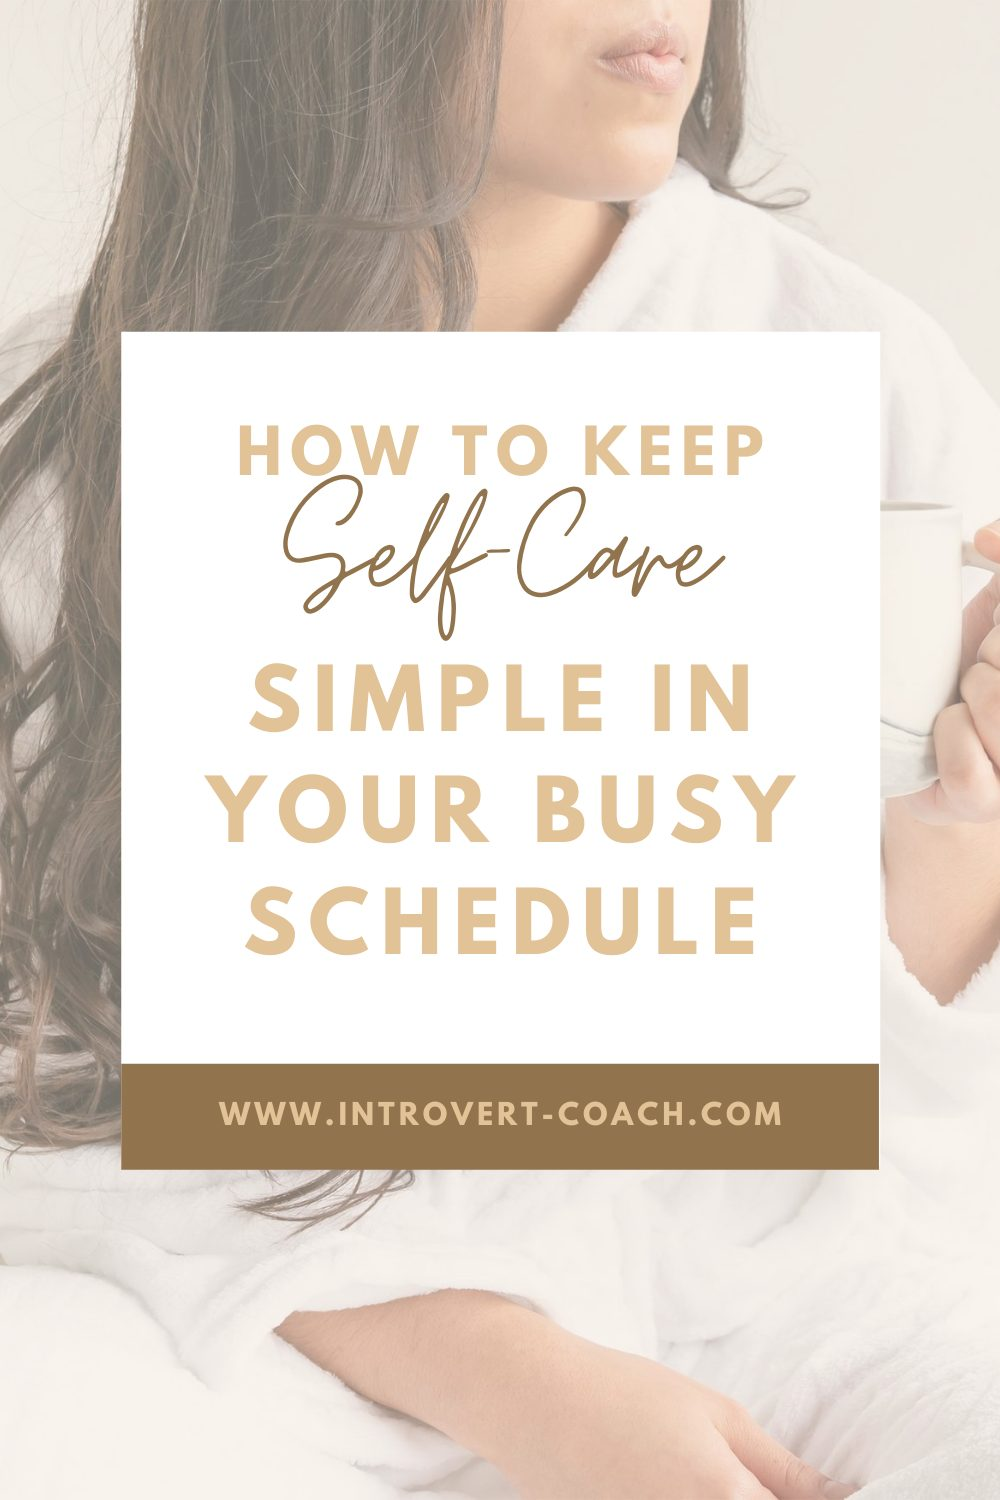 How to Keep Self-Care Simple in Your Busy Schedule